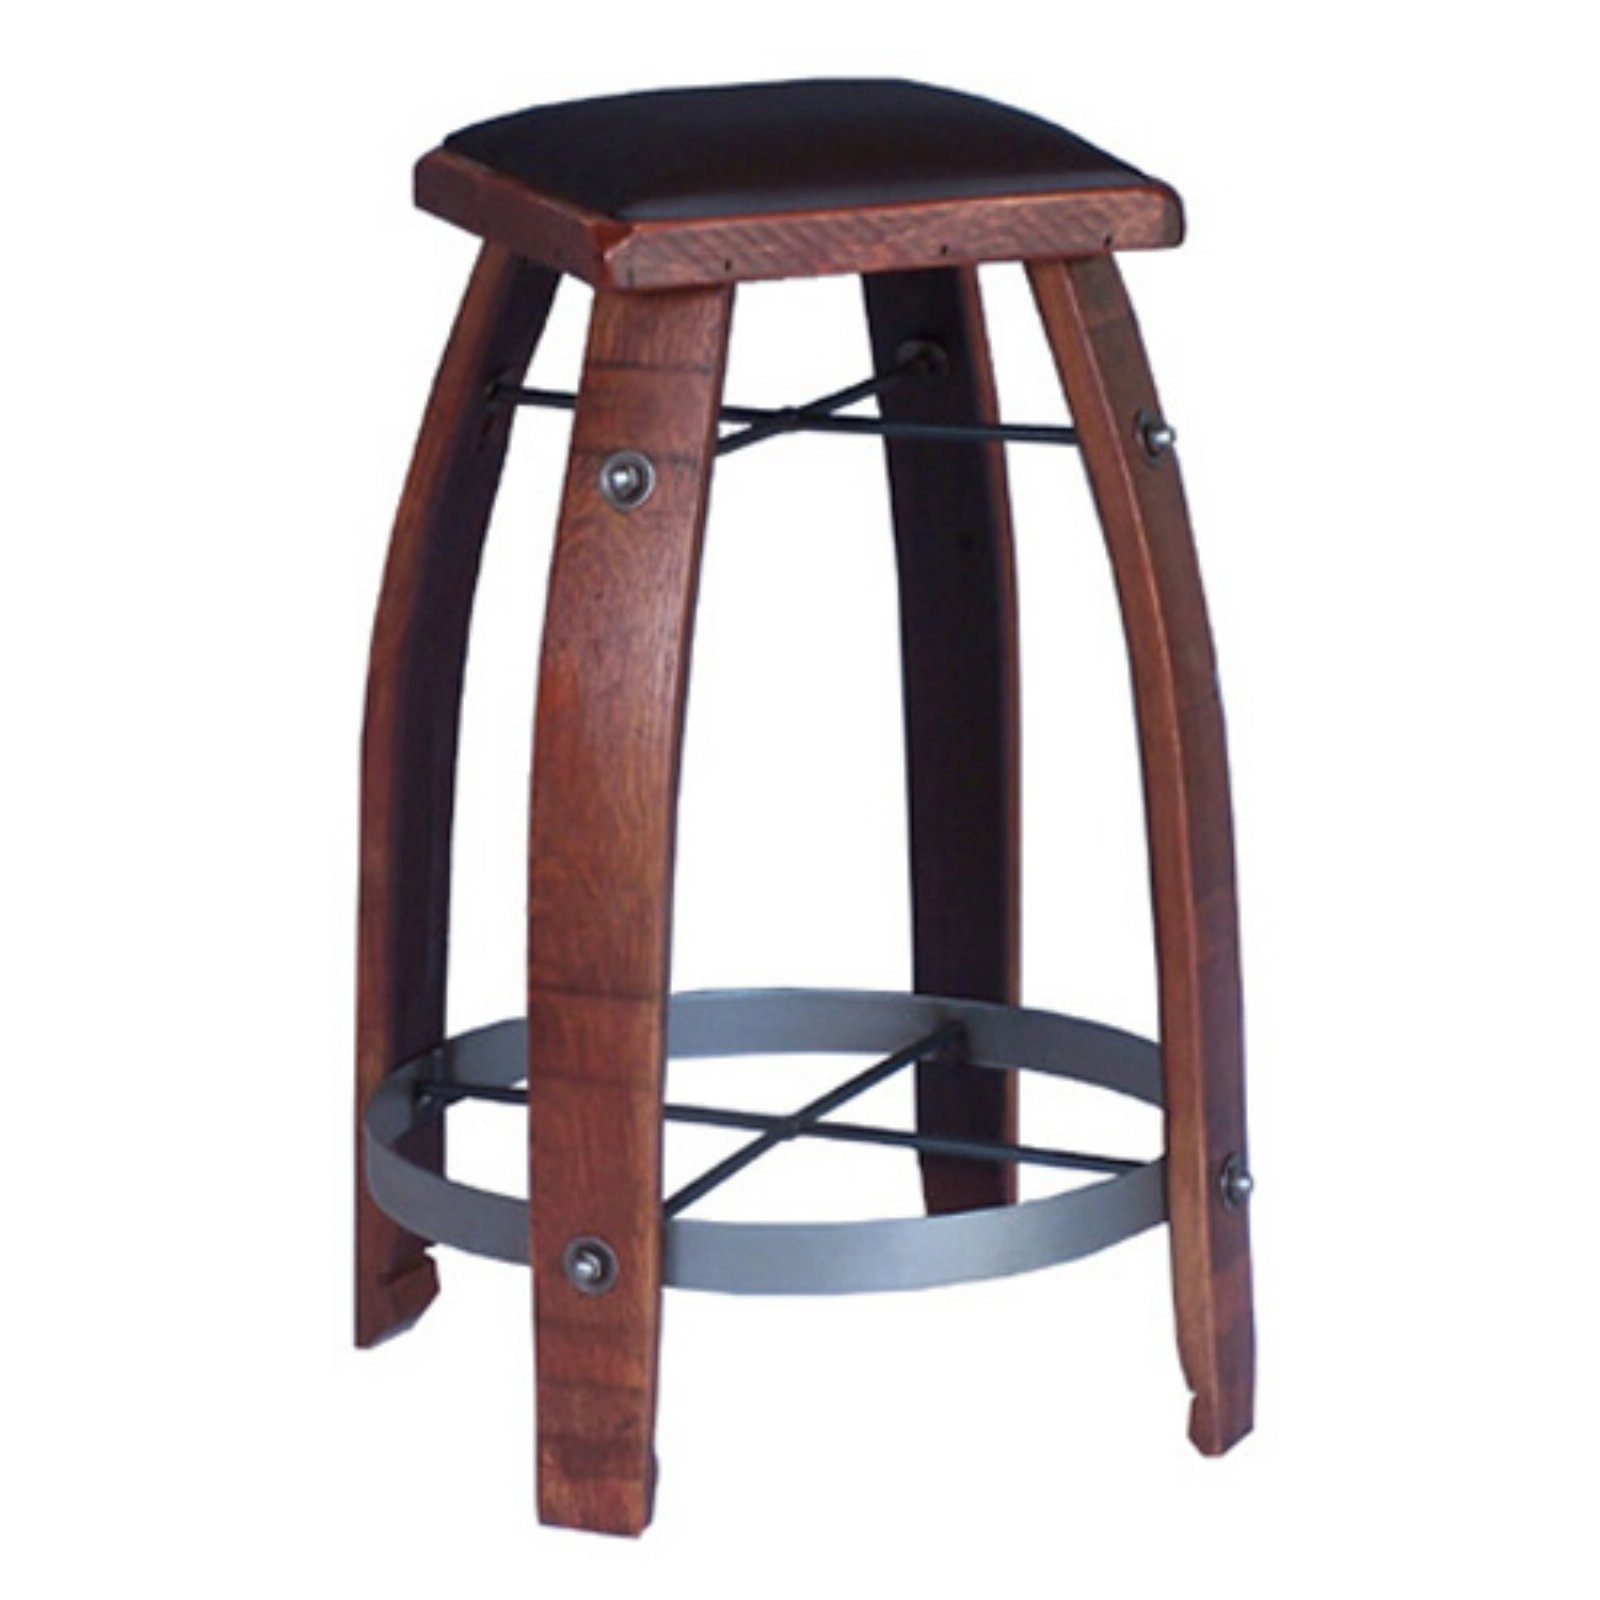 2 Day Designs Reclaimed 30 in. Stave Wine Barrel Bar Stool